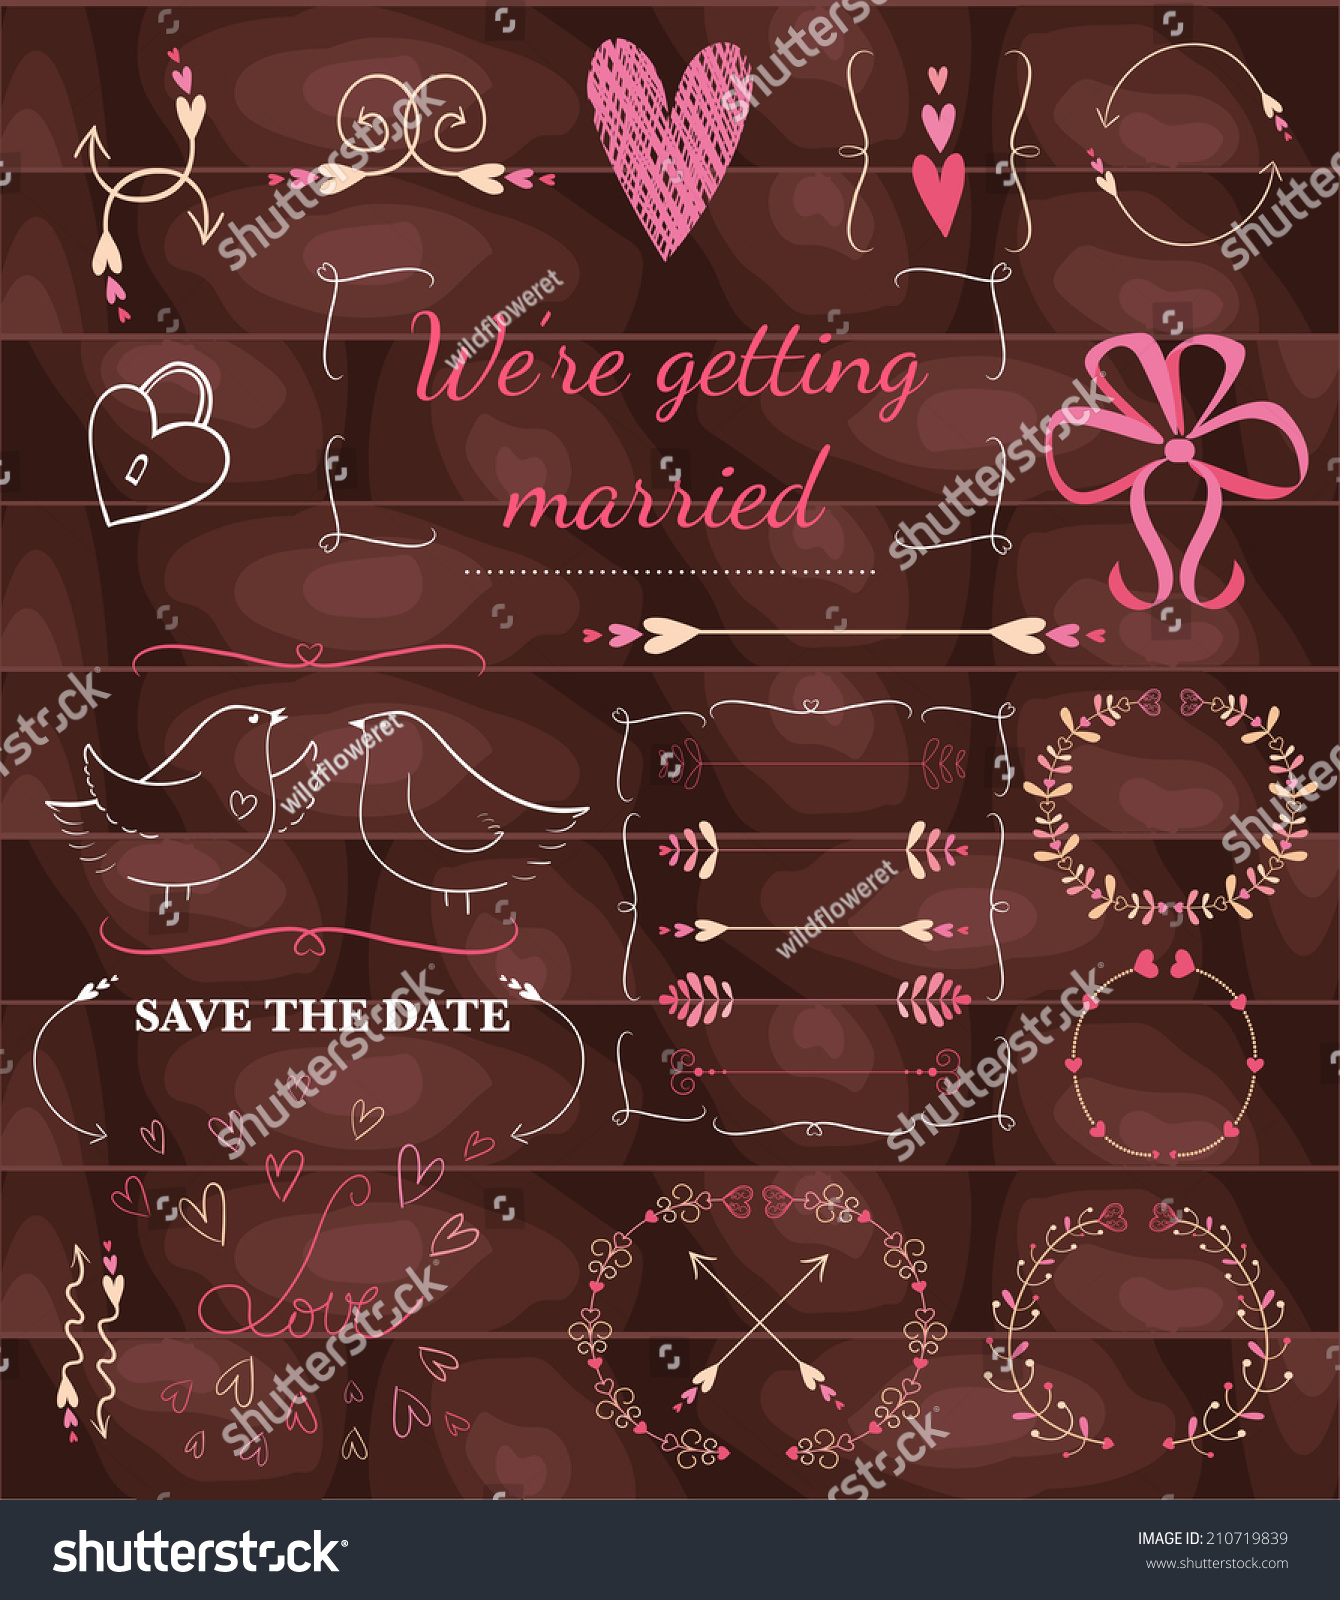 Were Getting Married Save Date Wedding Stock Vector 210719839 ...